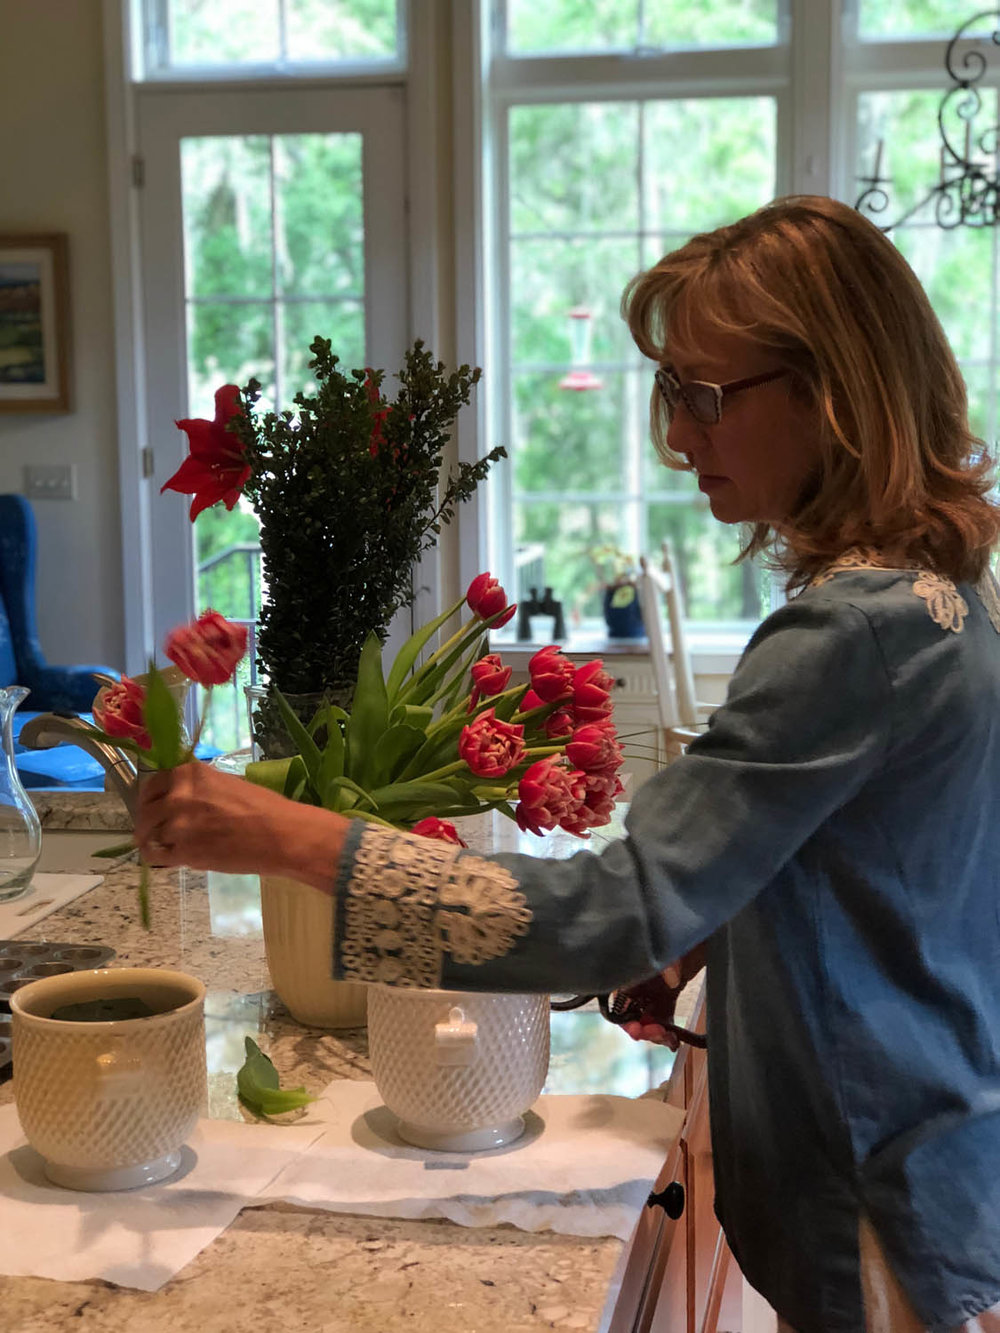 Ashley arranging flowers in the kitchen